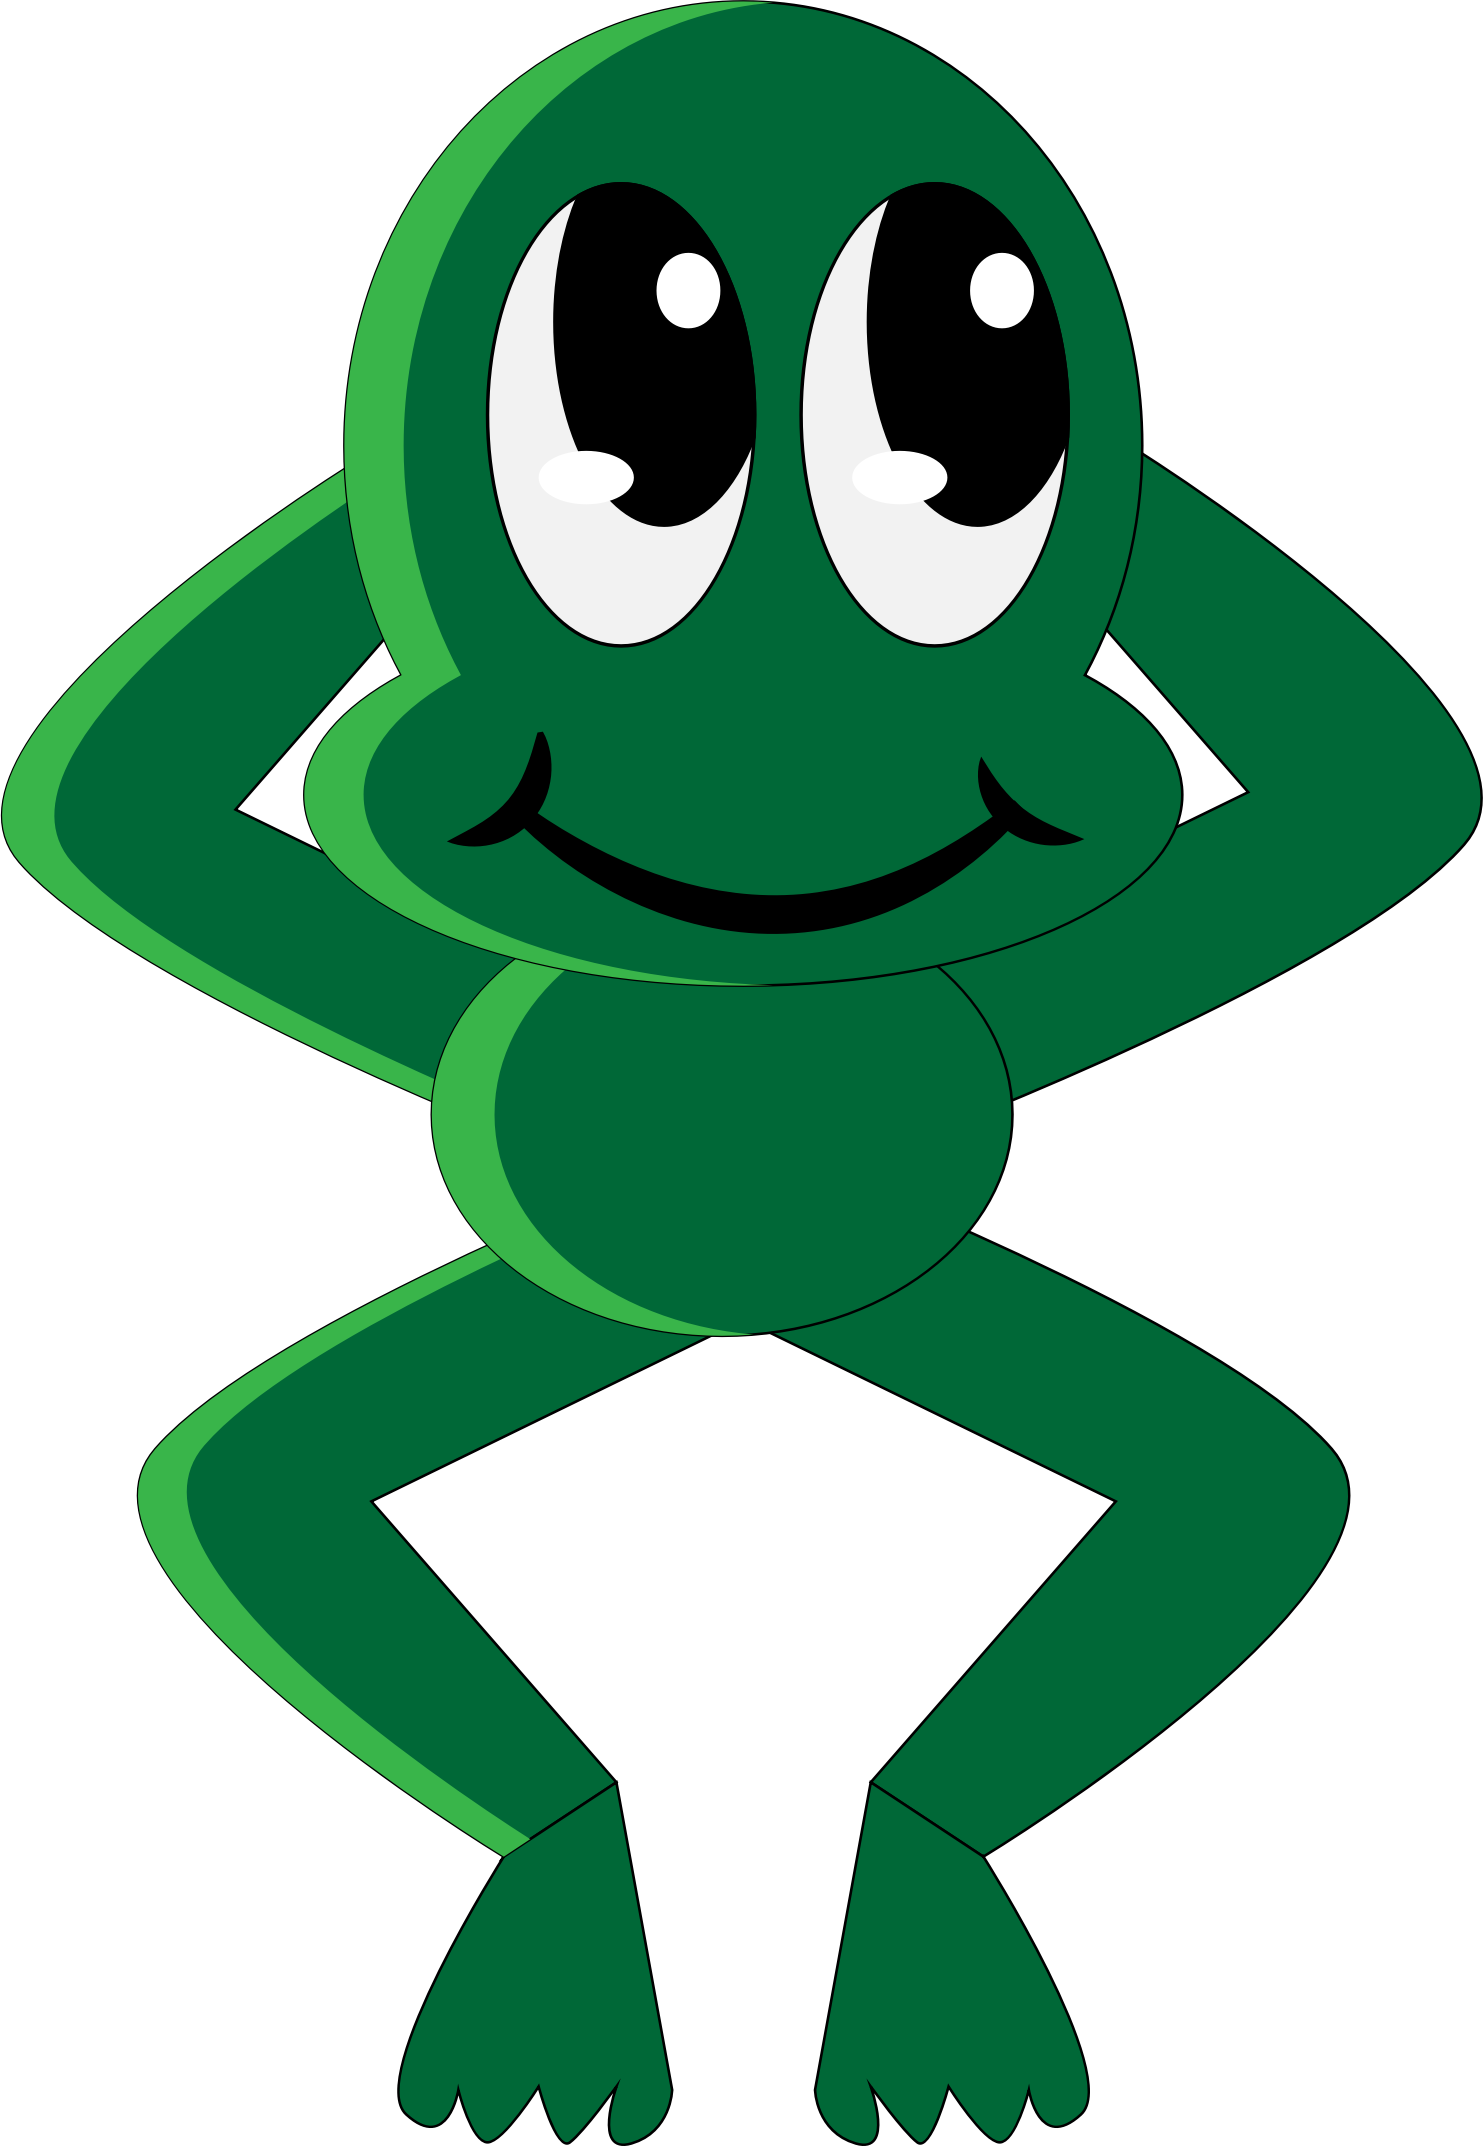 Smiling froggy big image. Employee clipart relaxed